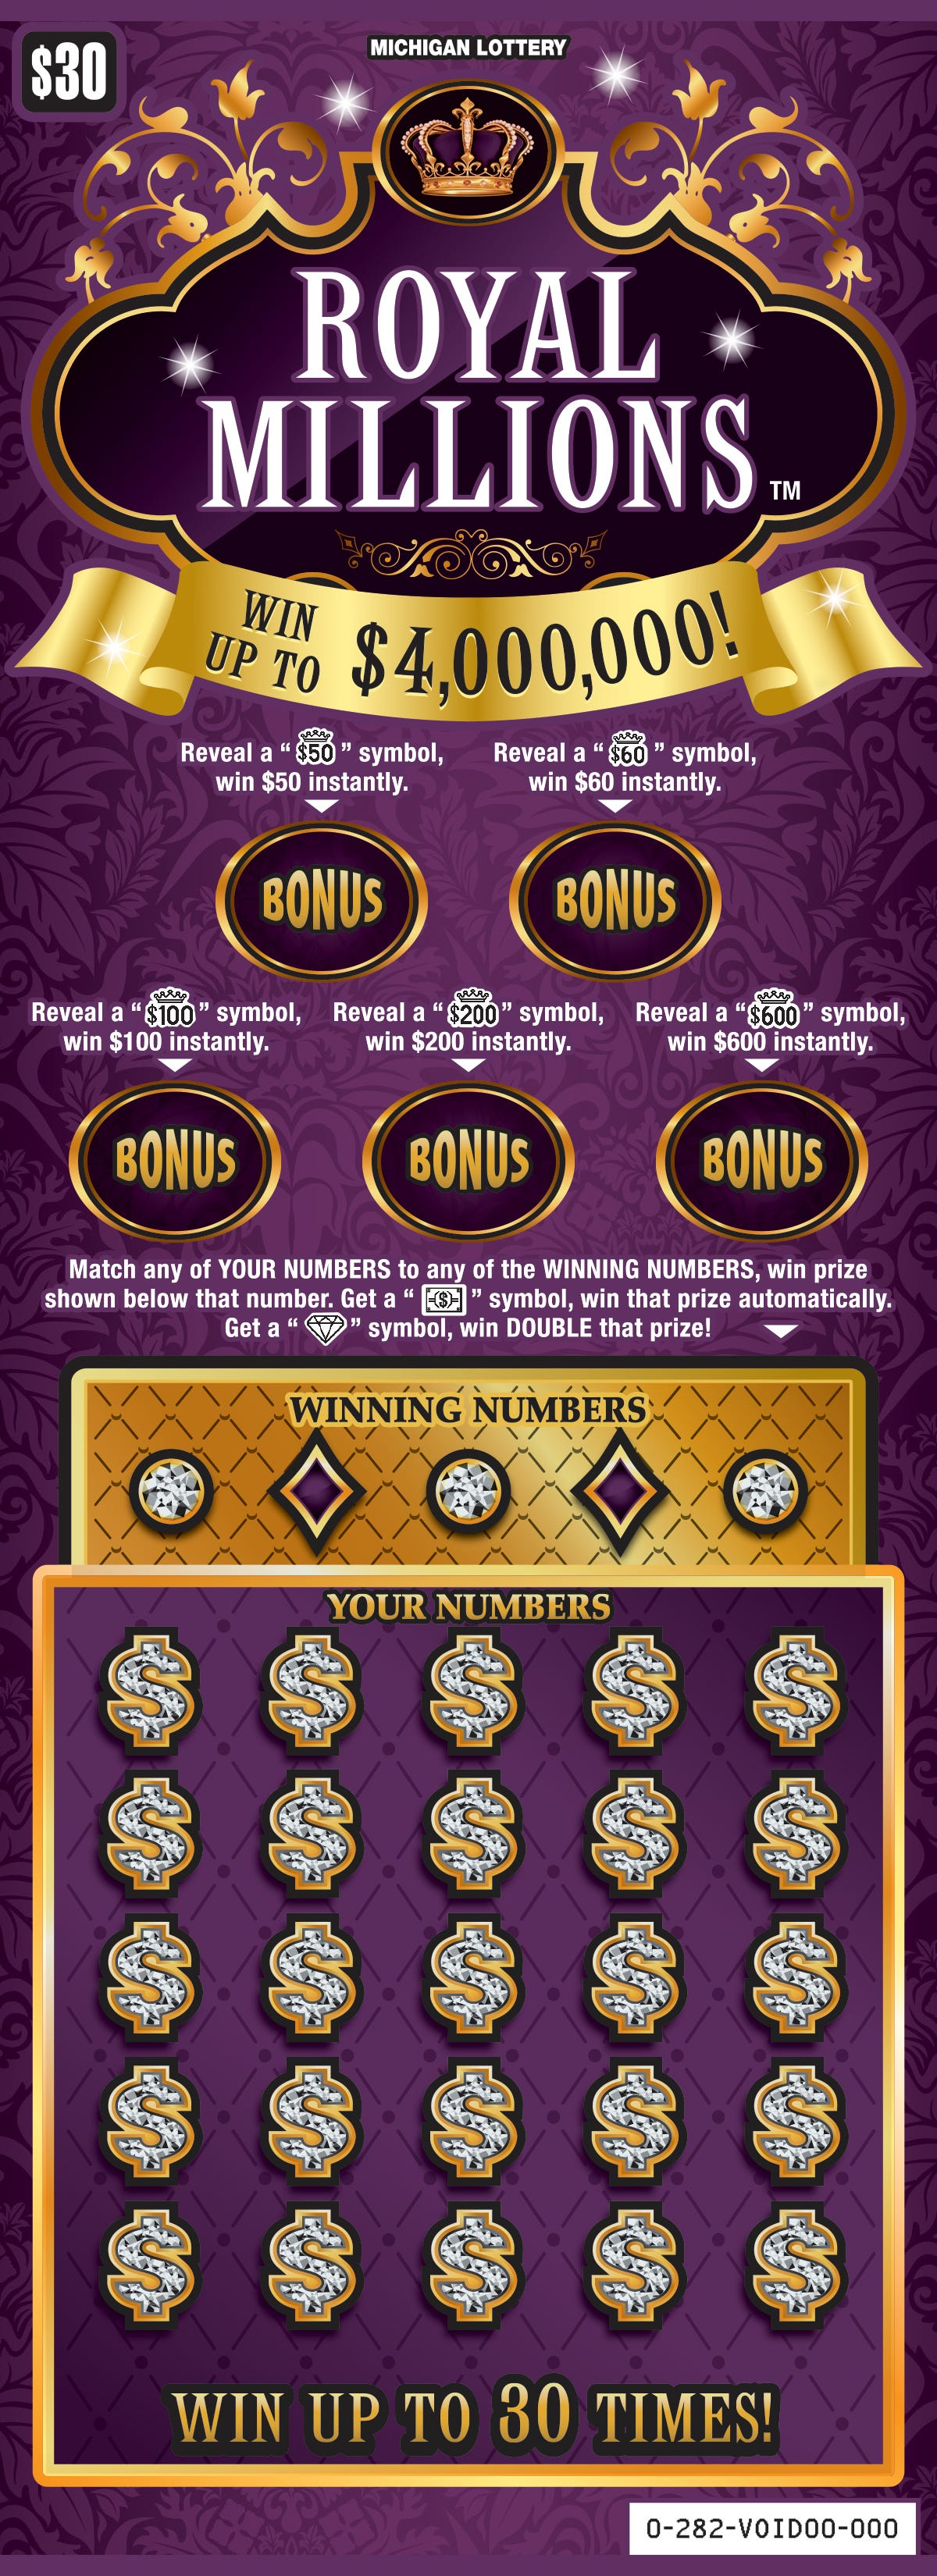 Michigan Lottery: What to know about 3 new instant games